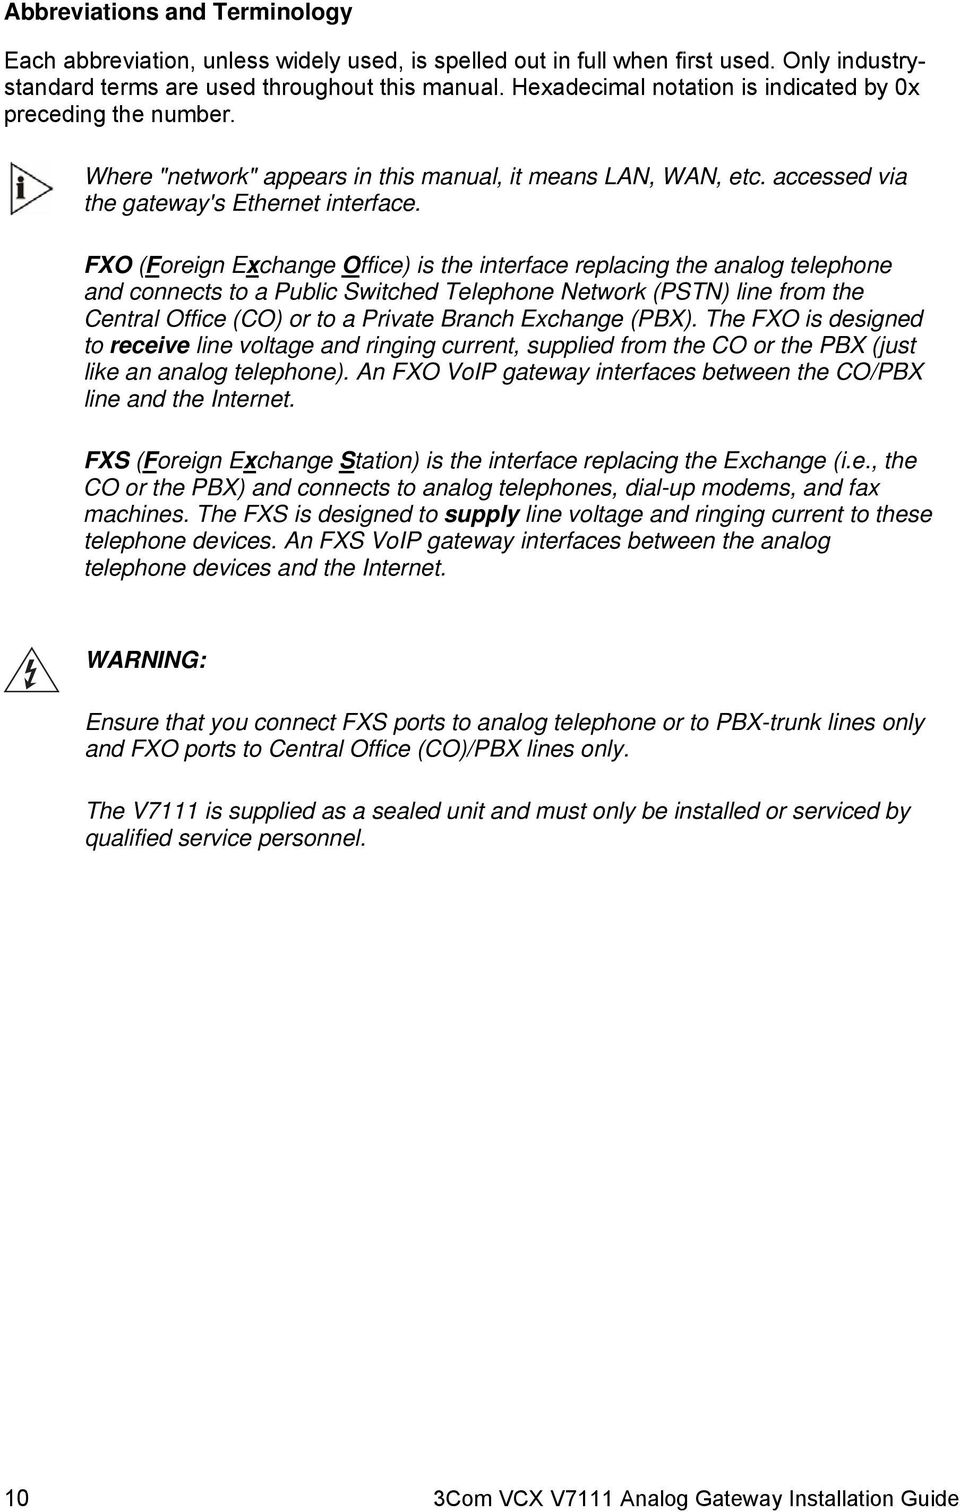 FXO (Foreign Exchange Office) is the interface replacing the analog telephone and connects to a Public Switched Telephone Network (PSTN) line from the Central Office (CO) or to a Private Branch